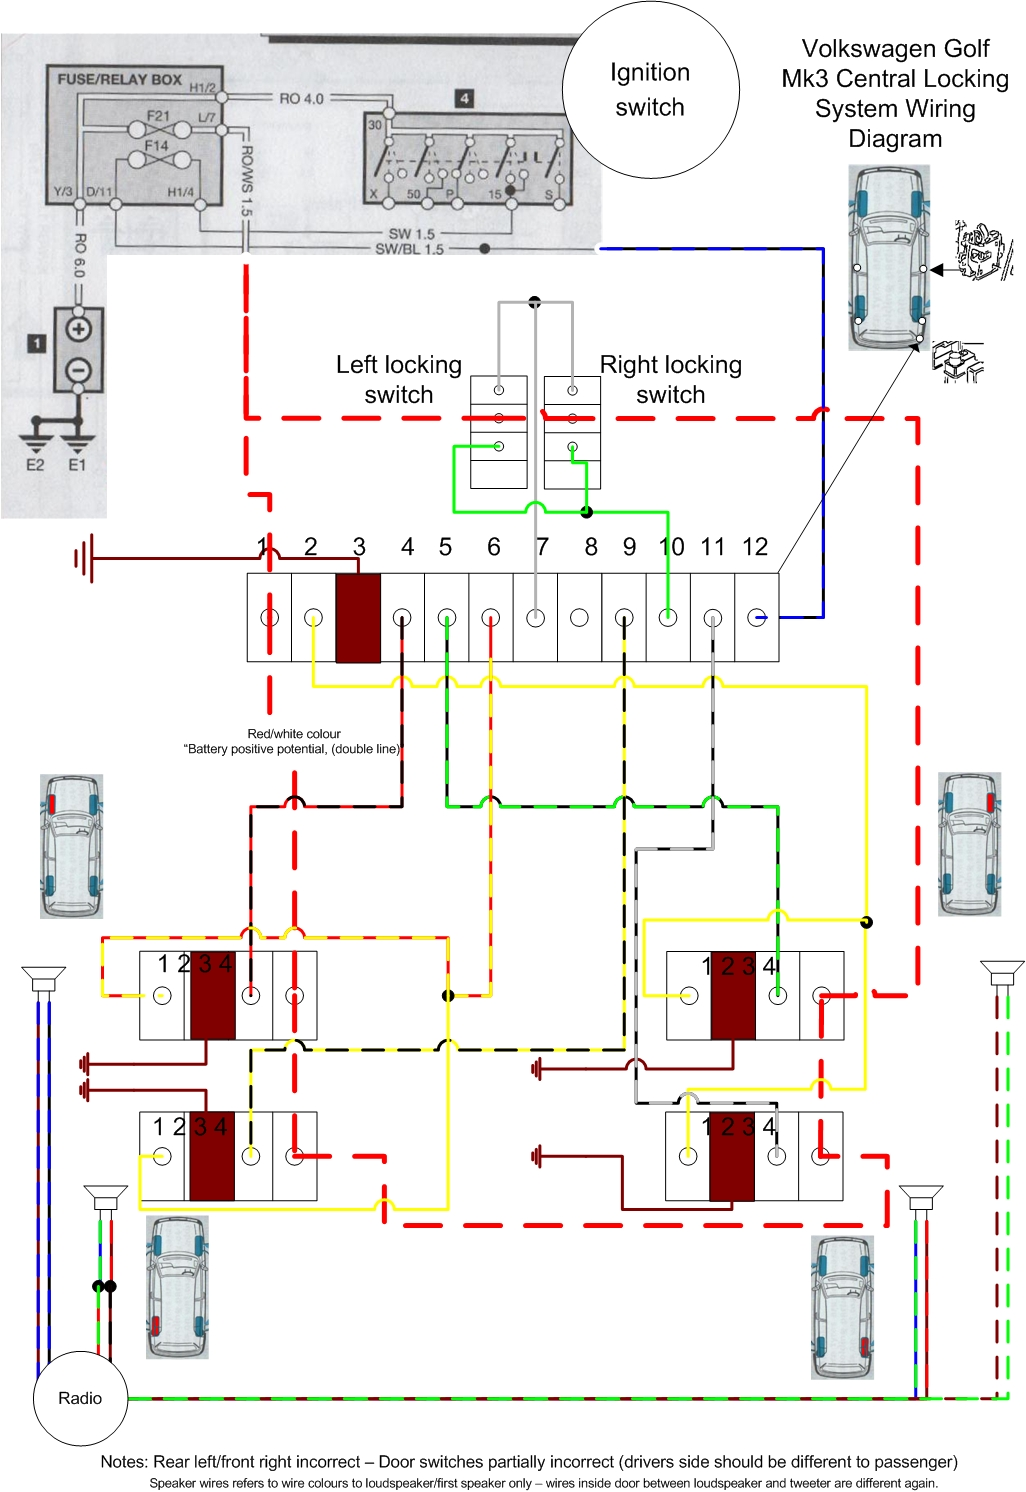 vw golf mk1 ignition wiring diagram gmc radio diagrams central locking system operation and diagnosis - the ecomatic forum